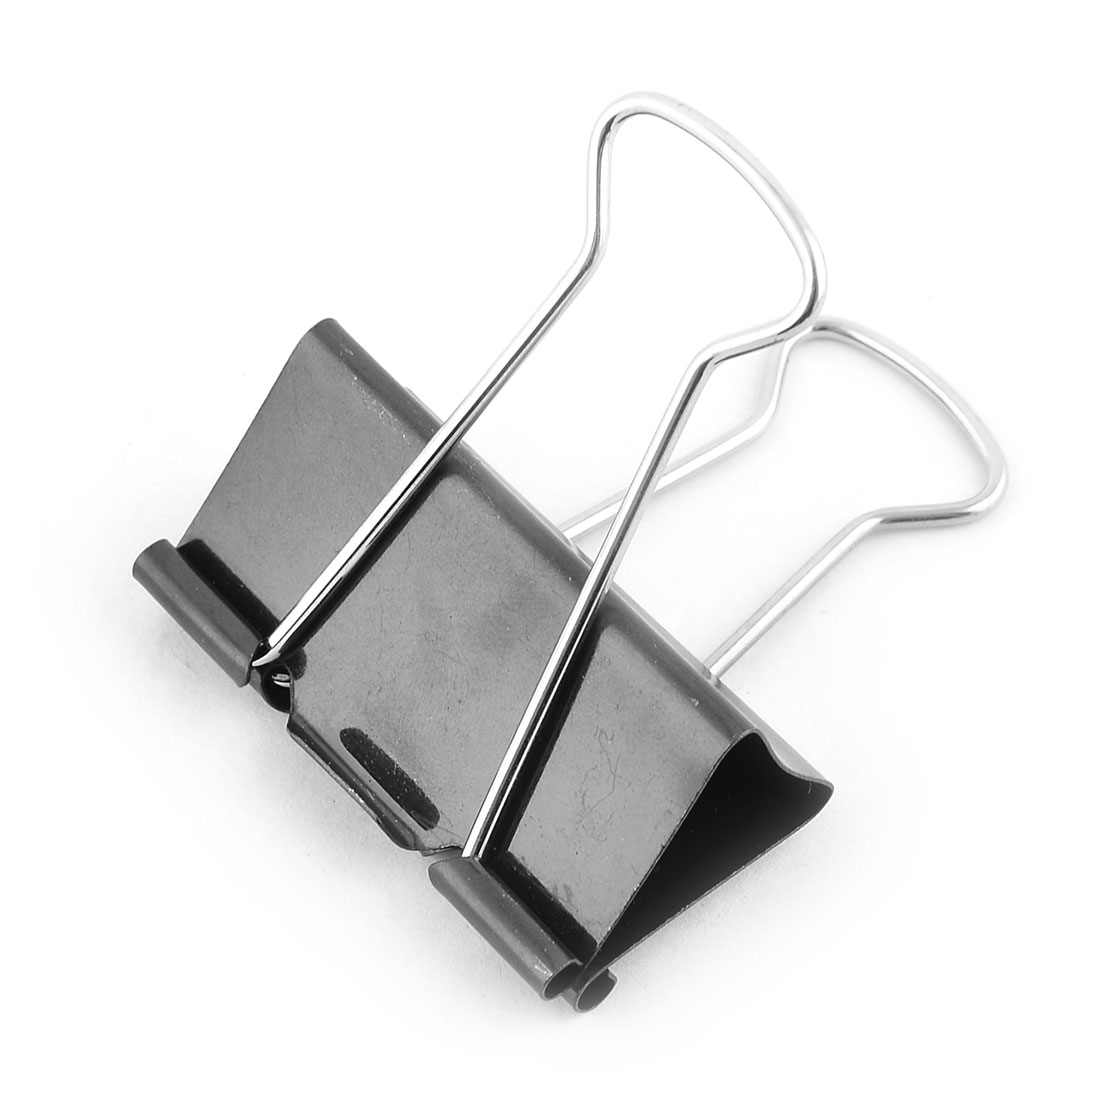 School Office Metal Paper File Documents Binder Clip Clamp Black